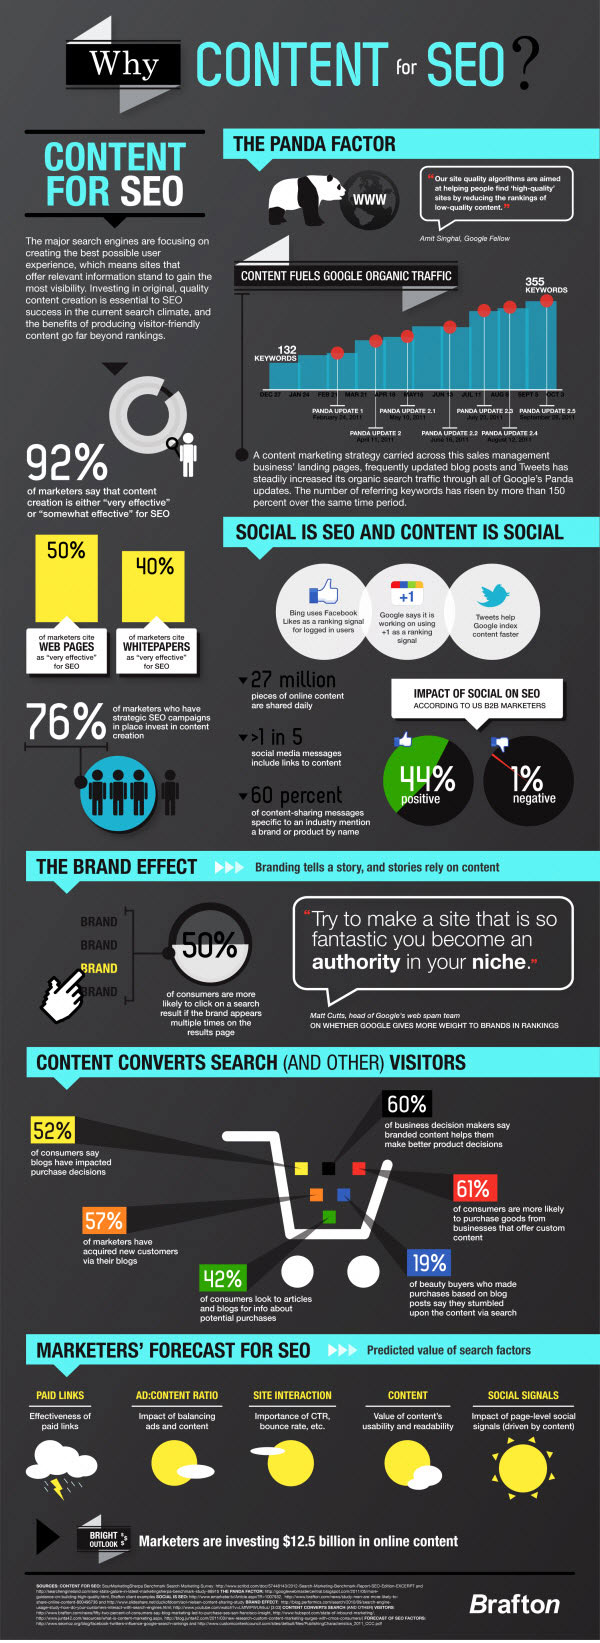 why content for seo brafton infographic jonno rodd Why content for SEO? Infographic